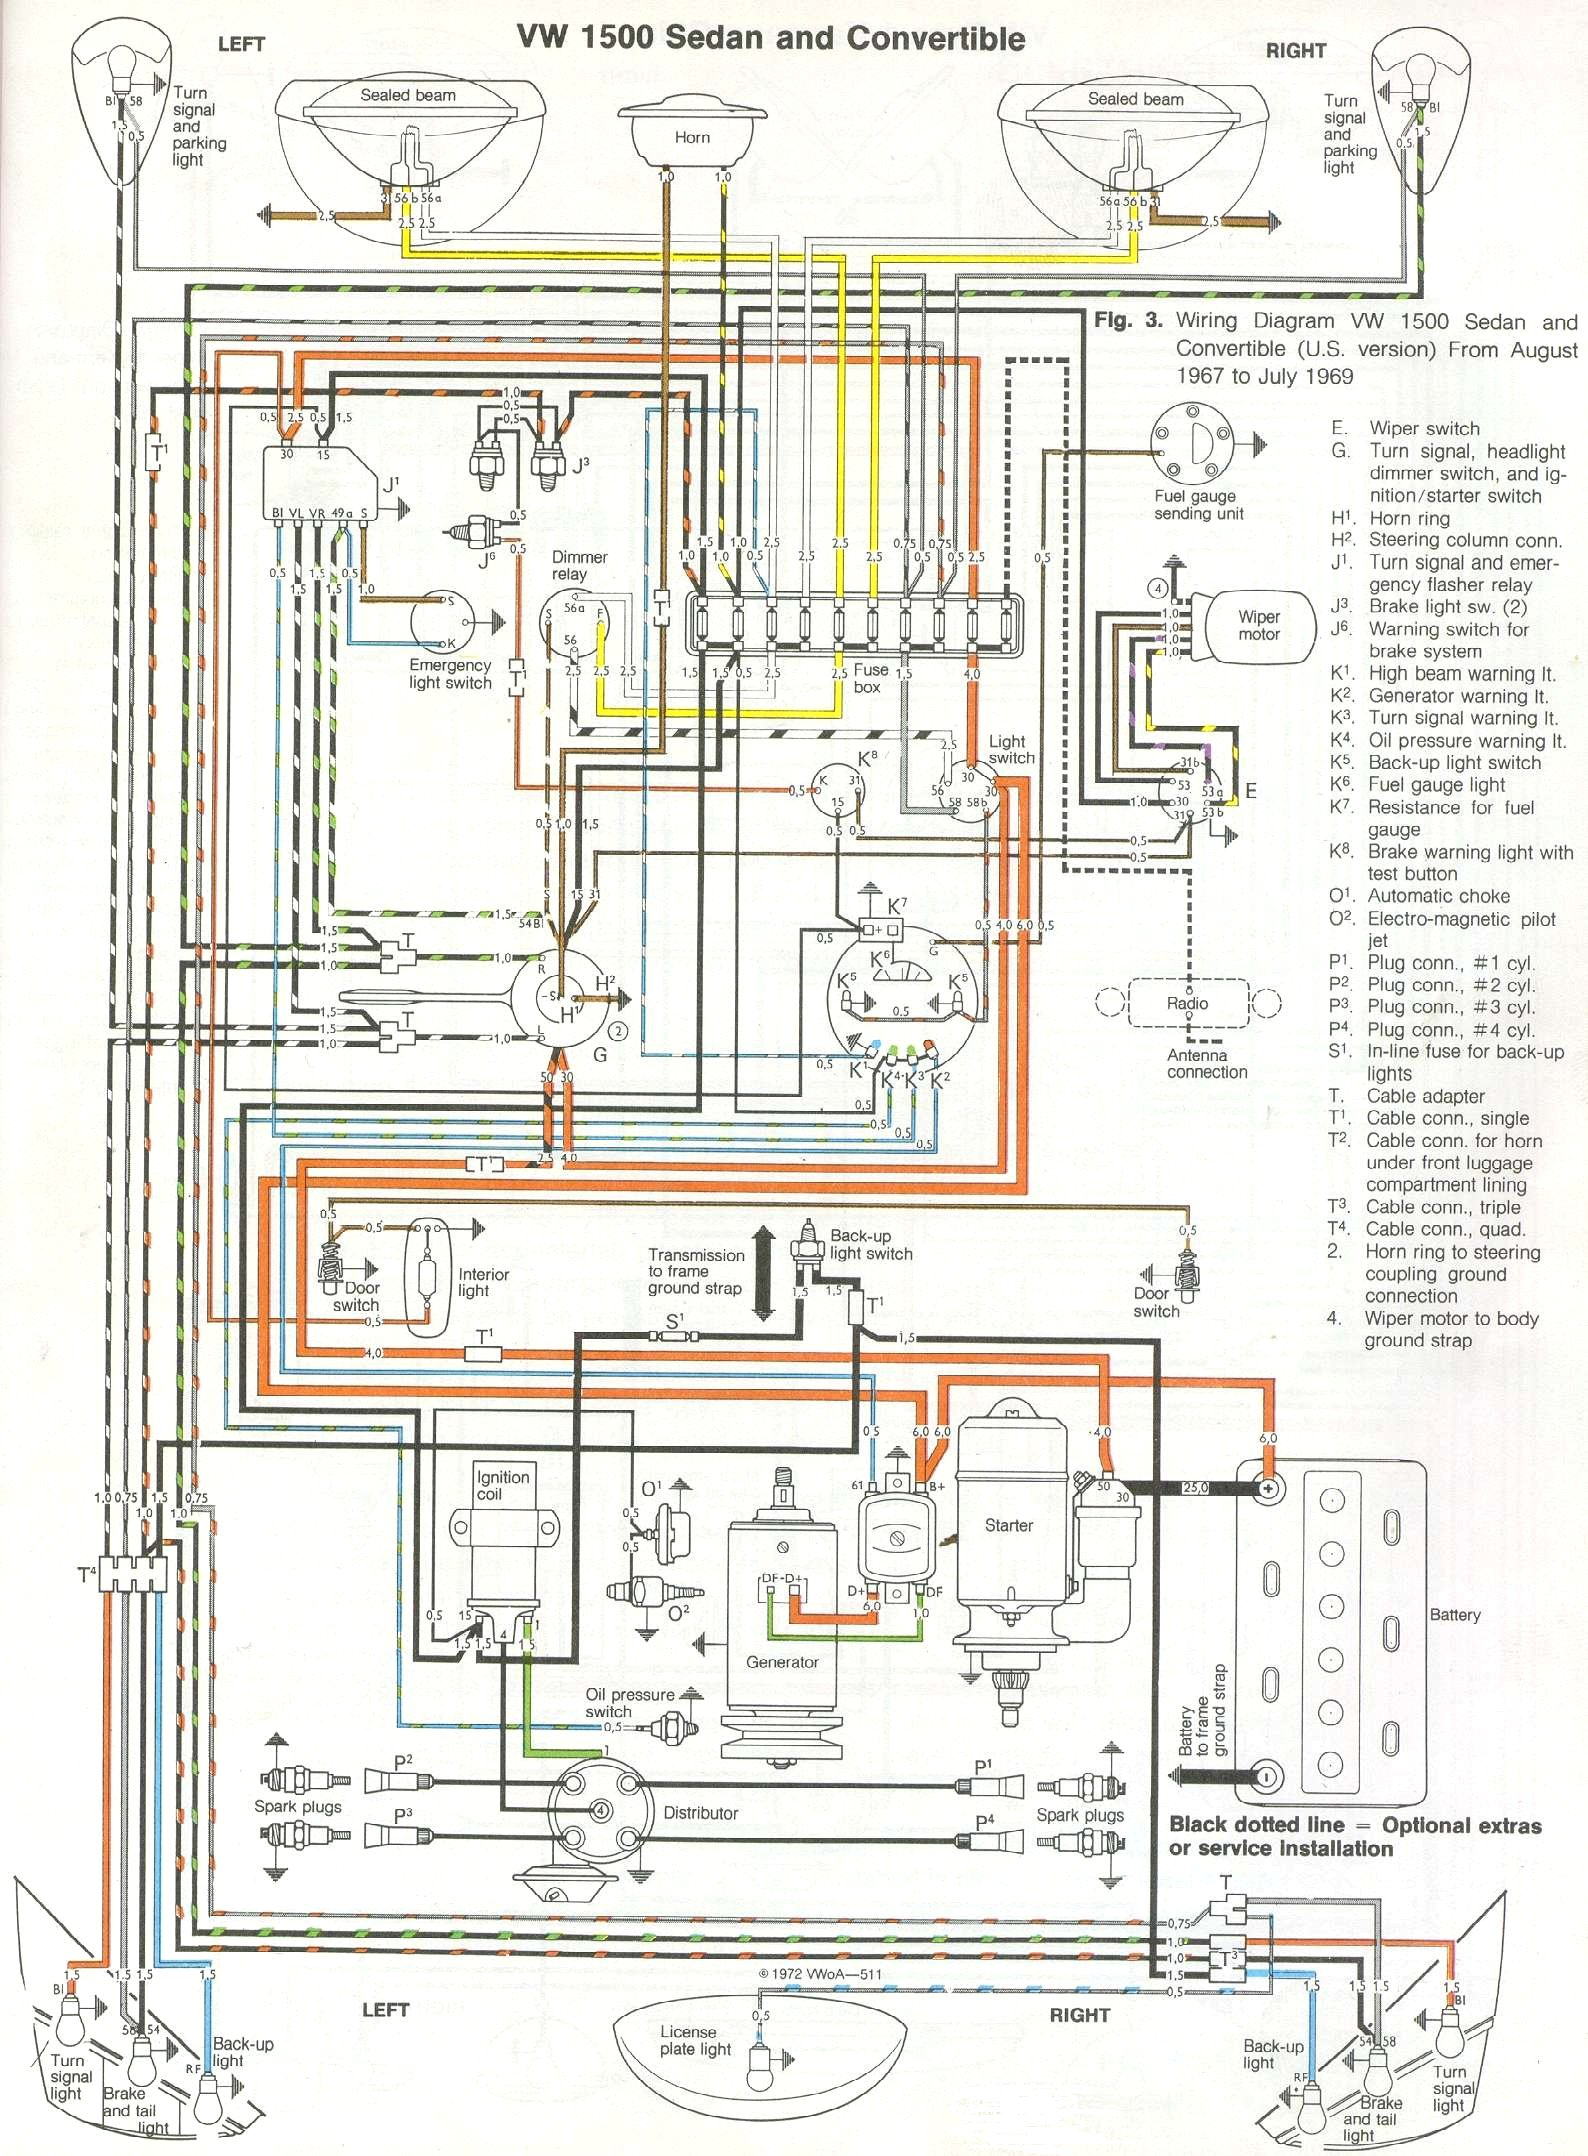 bug_6869 thesamba com type 1 wiring diagrams 1973 vw wiring diagram at mifinder.co